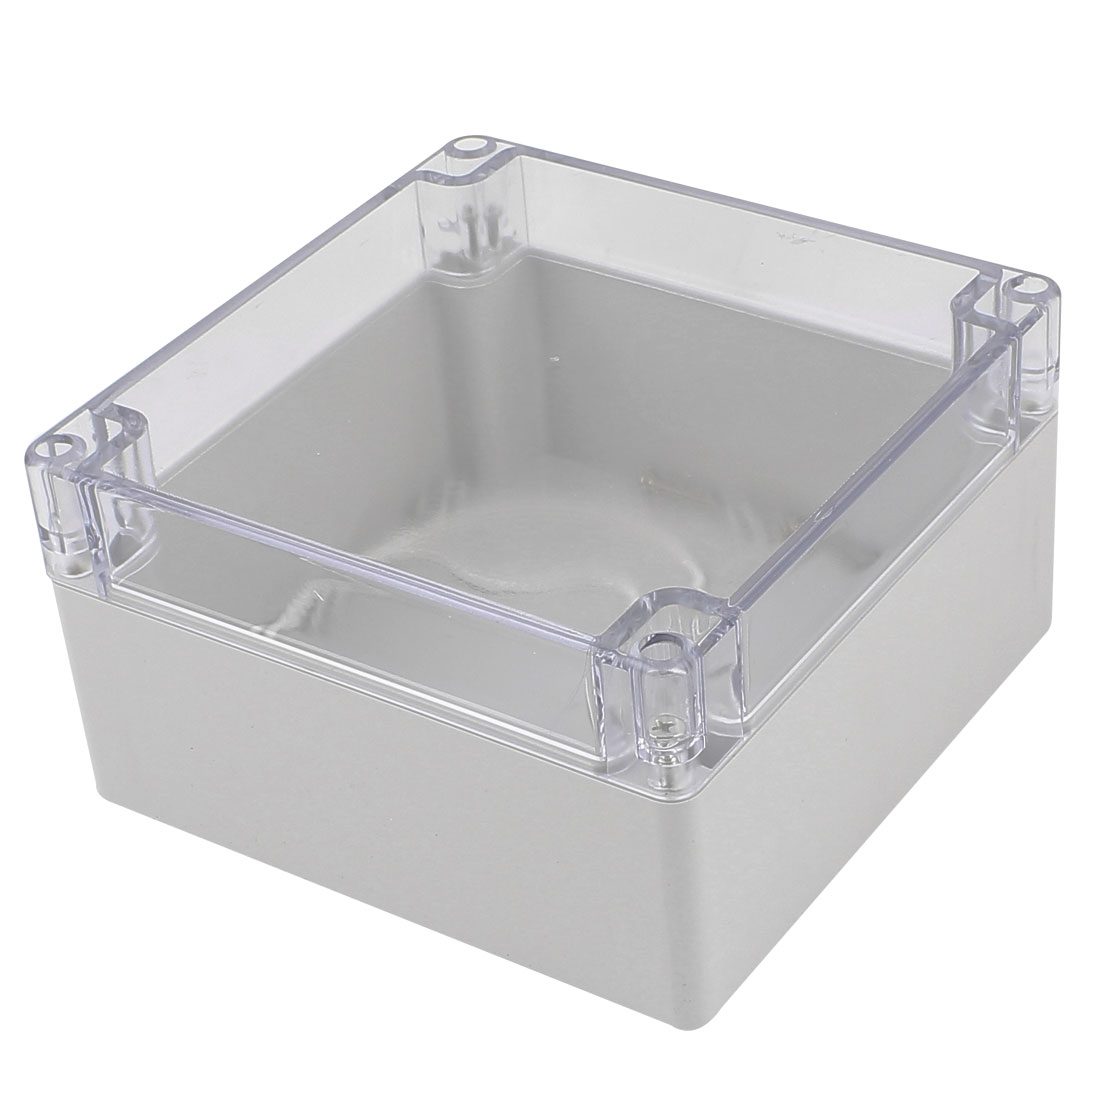 160mm x 160mm x 90mm Clear Cover Dustproof IP65 Enclosure Case DIY Junction Box